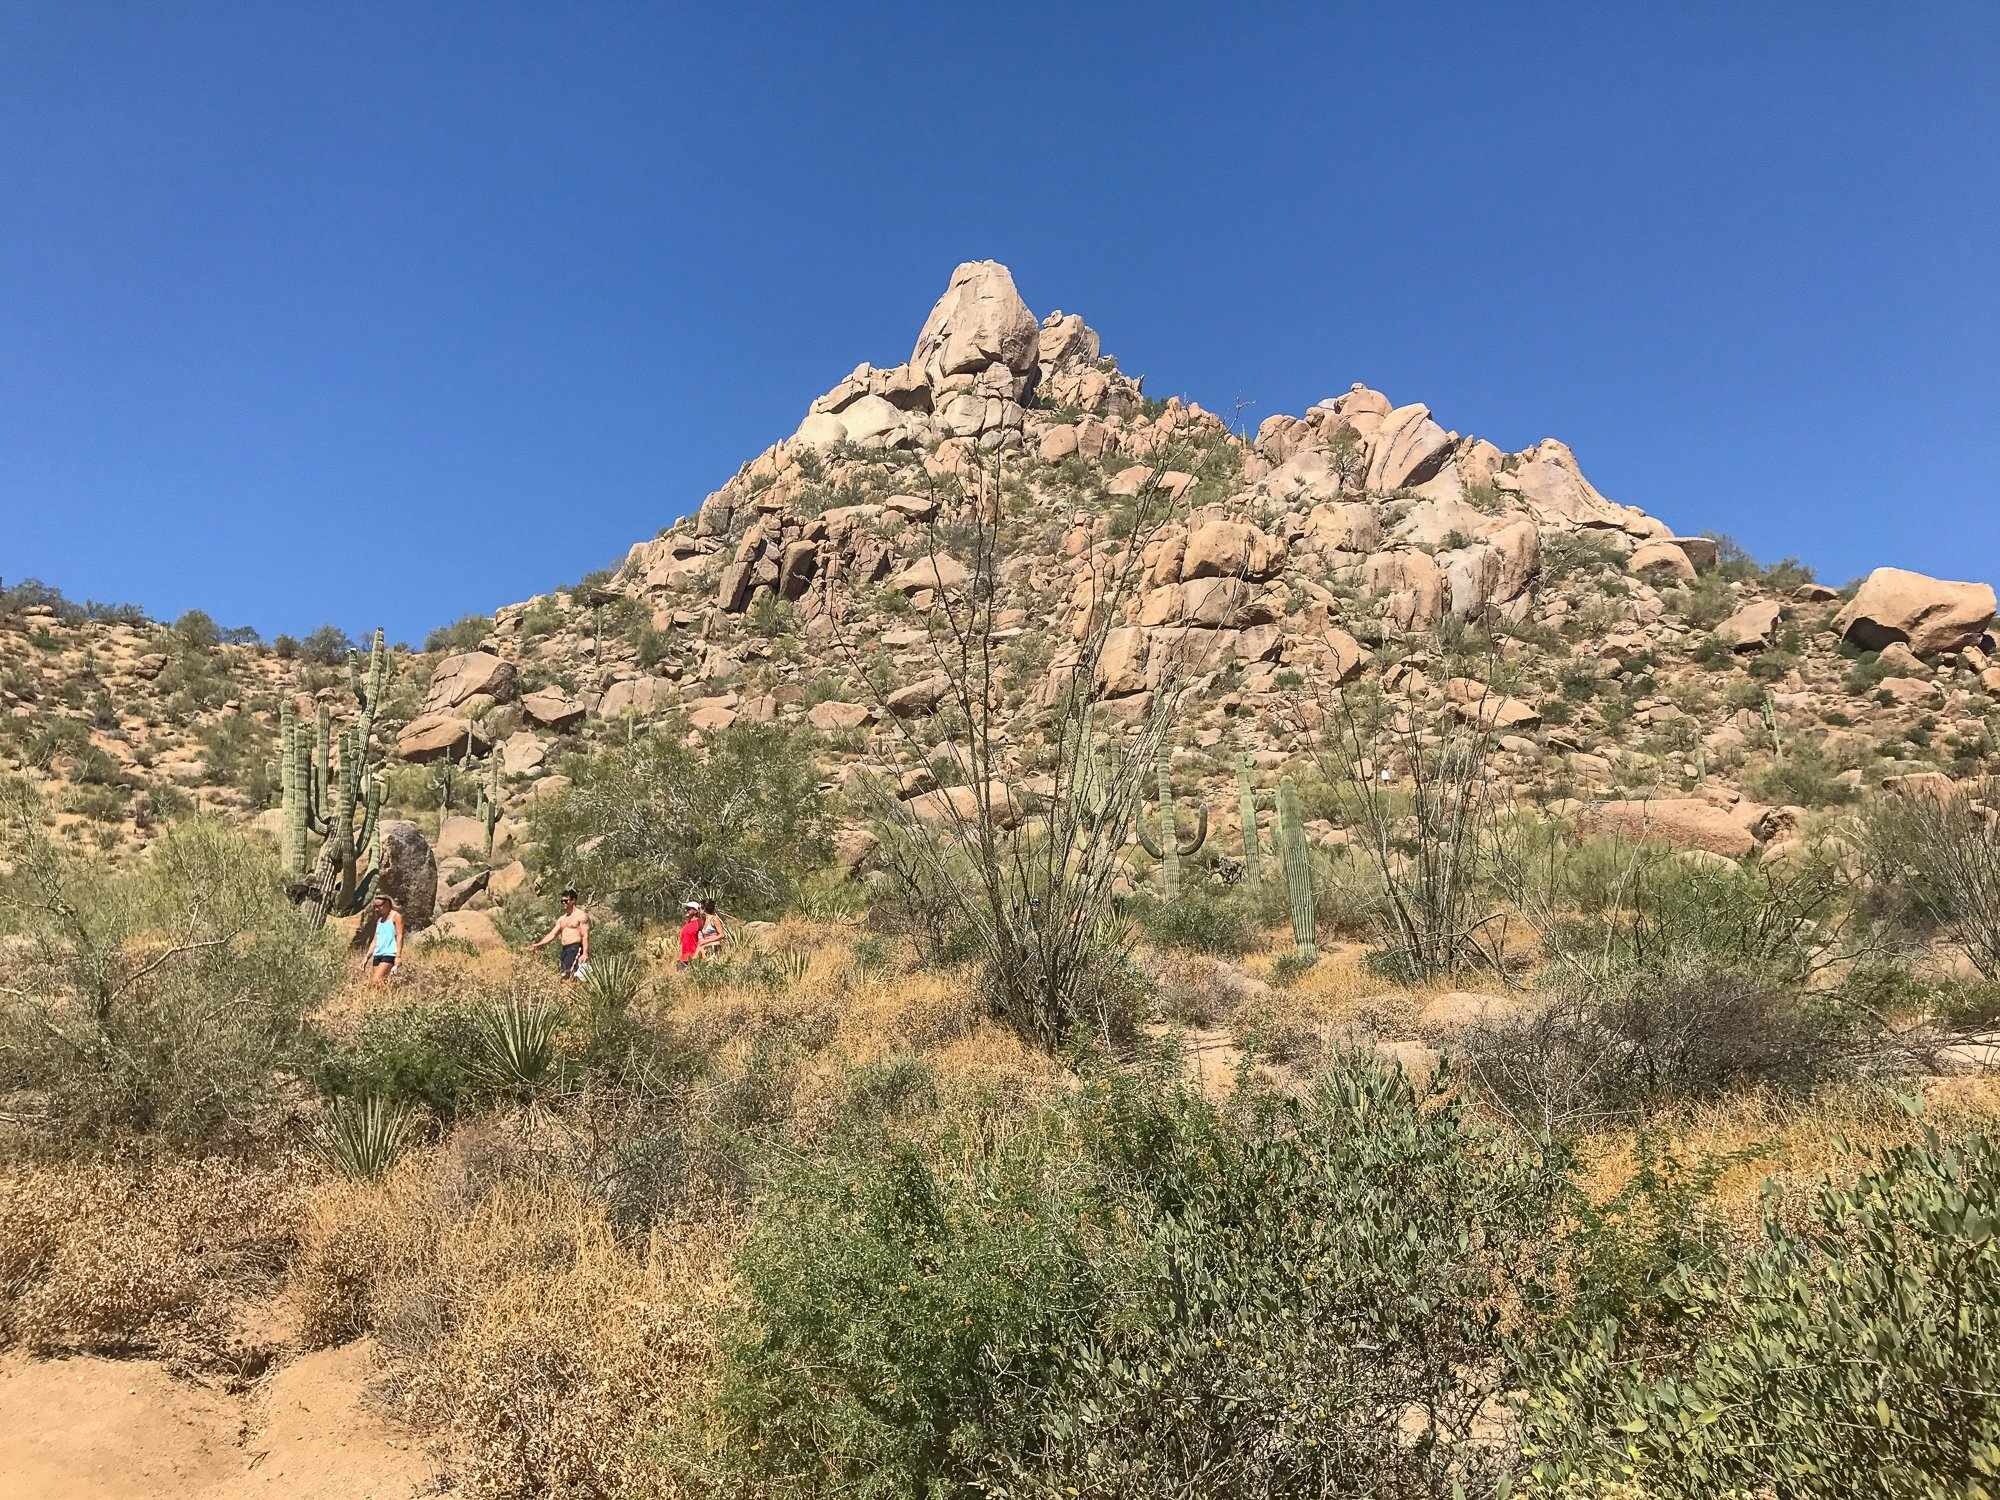 View of Pinnacle Peak Mountain during a hike from Four Seasons Scottsdale